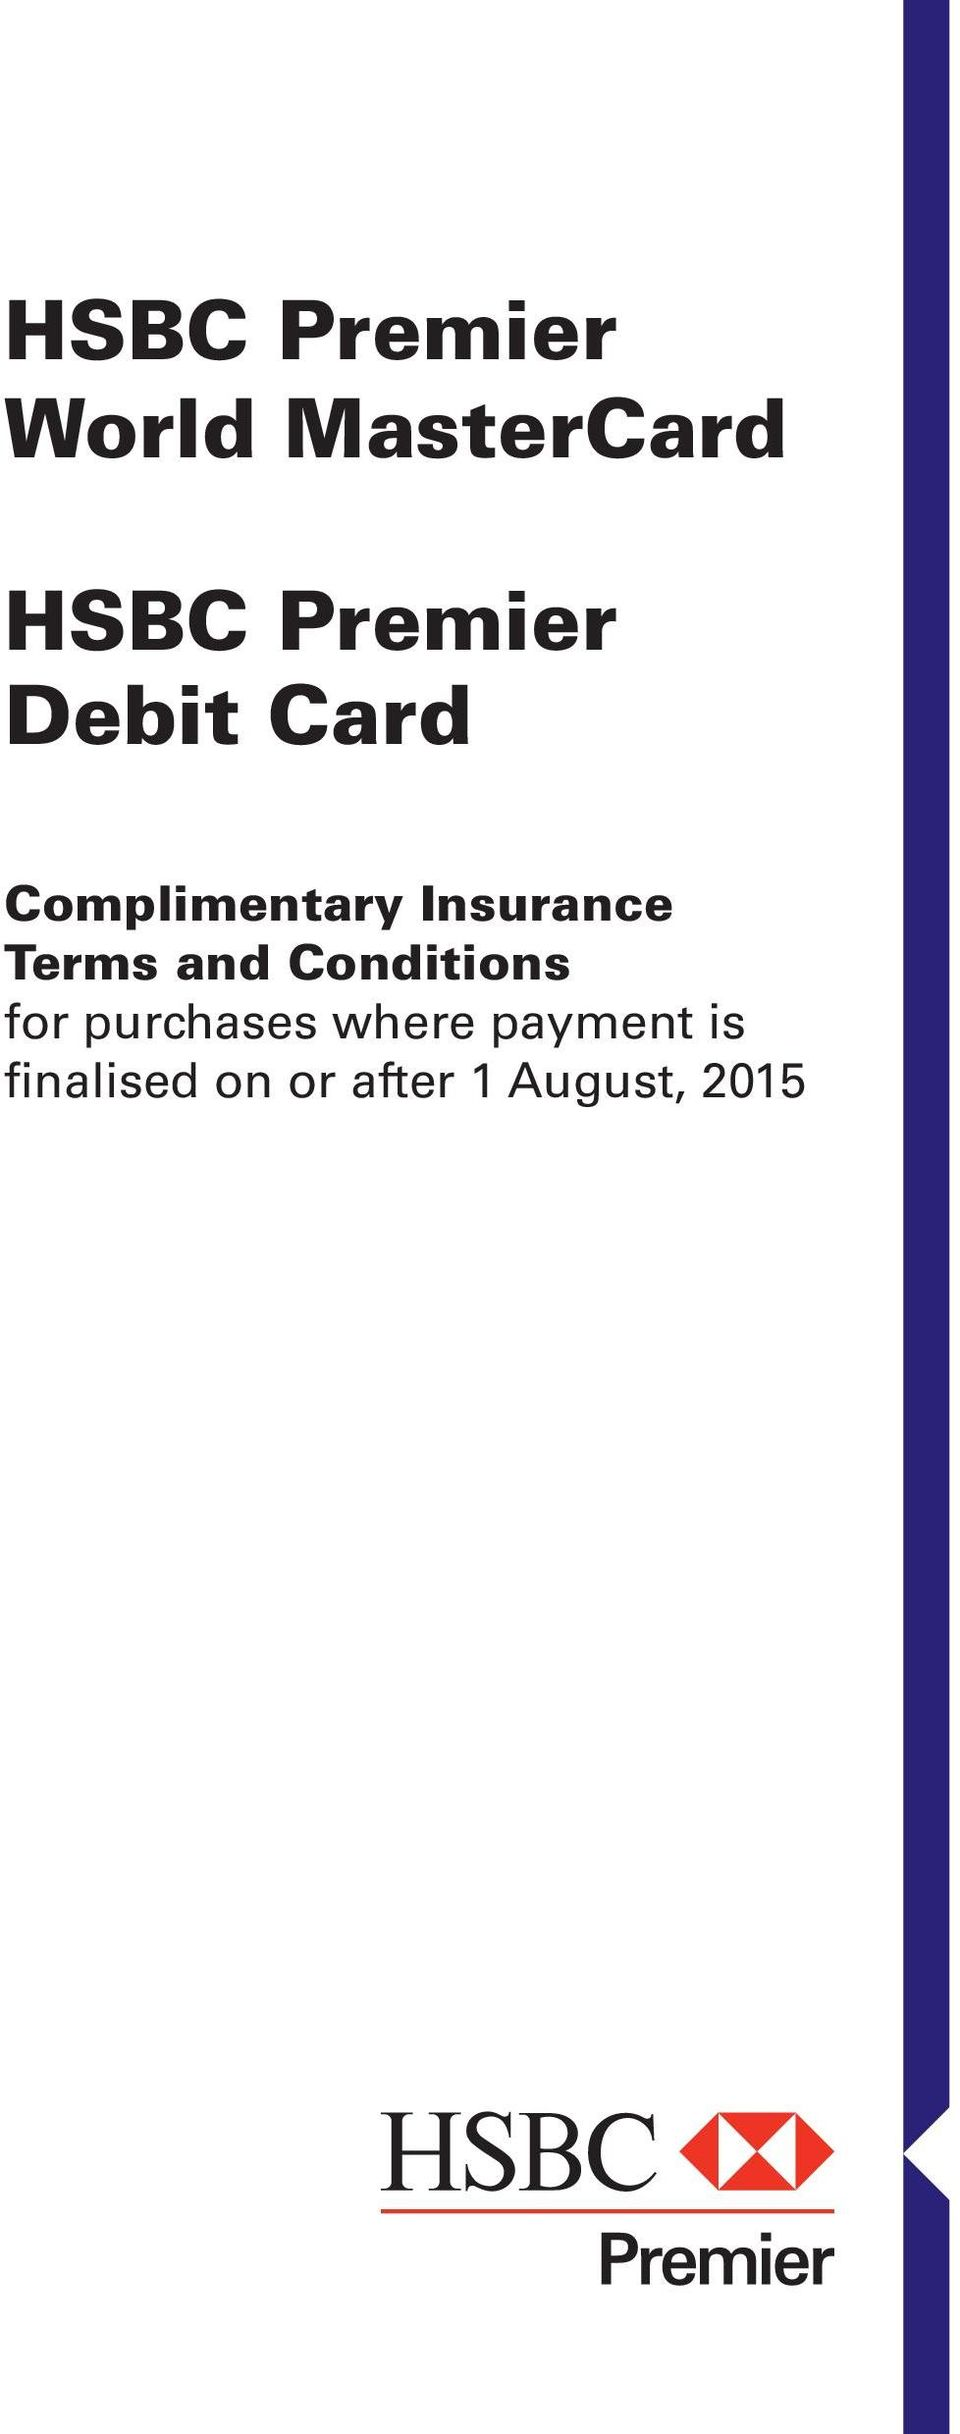 Insurance Terms and Conditions for